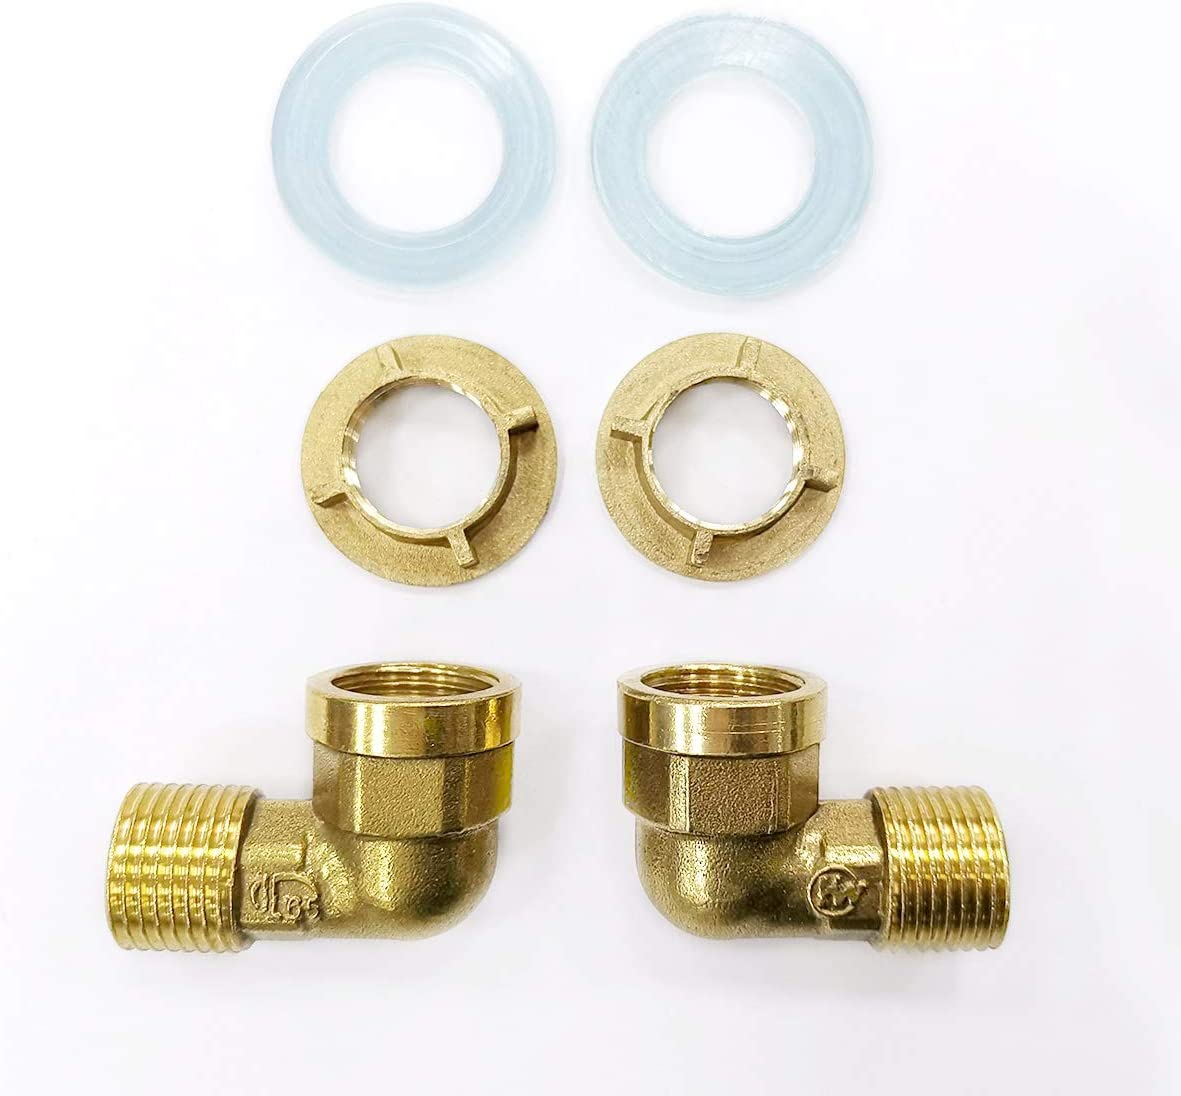 - Installation Kit For Wall Mount Commercial Kitchen Faucet